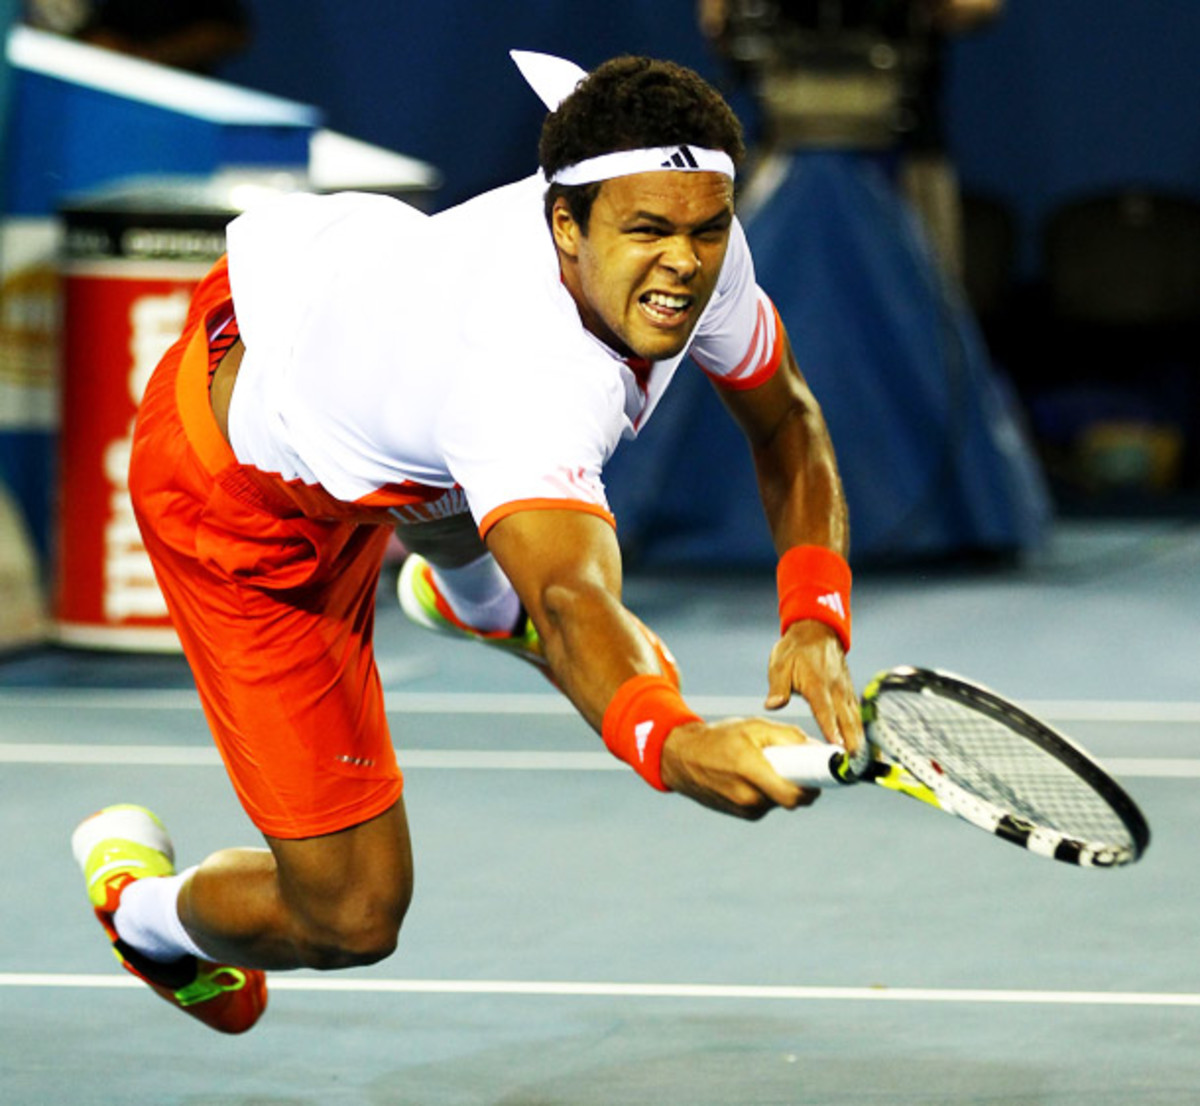 jo-wilfried-tsonga-610-getty